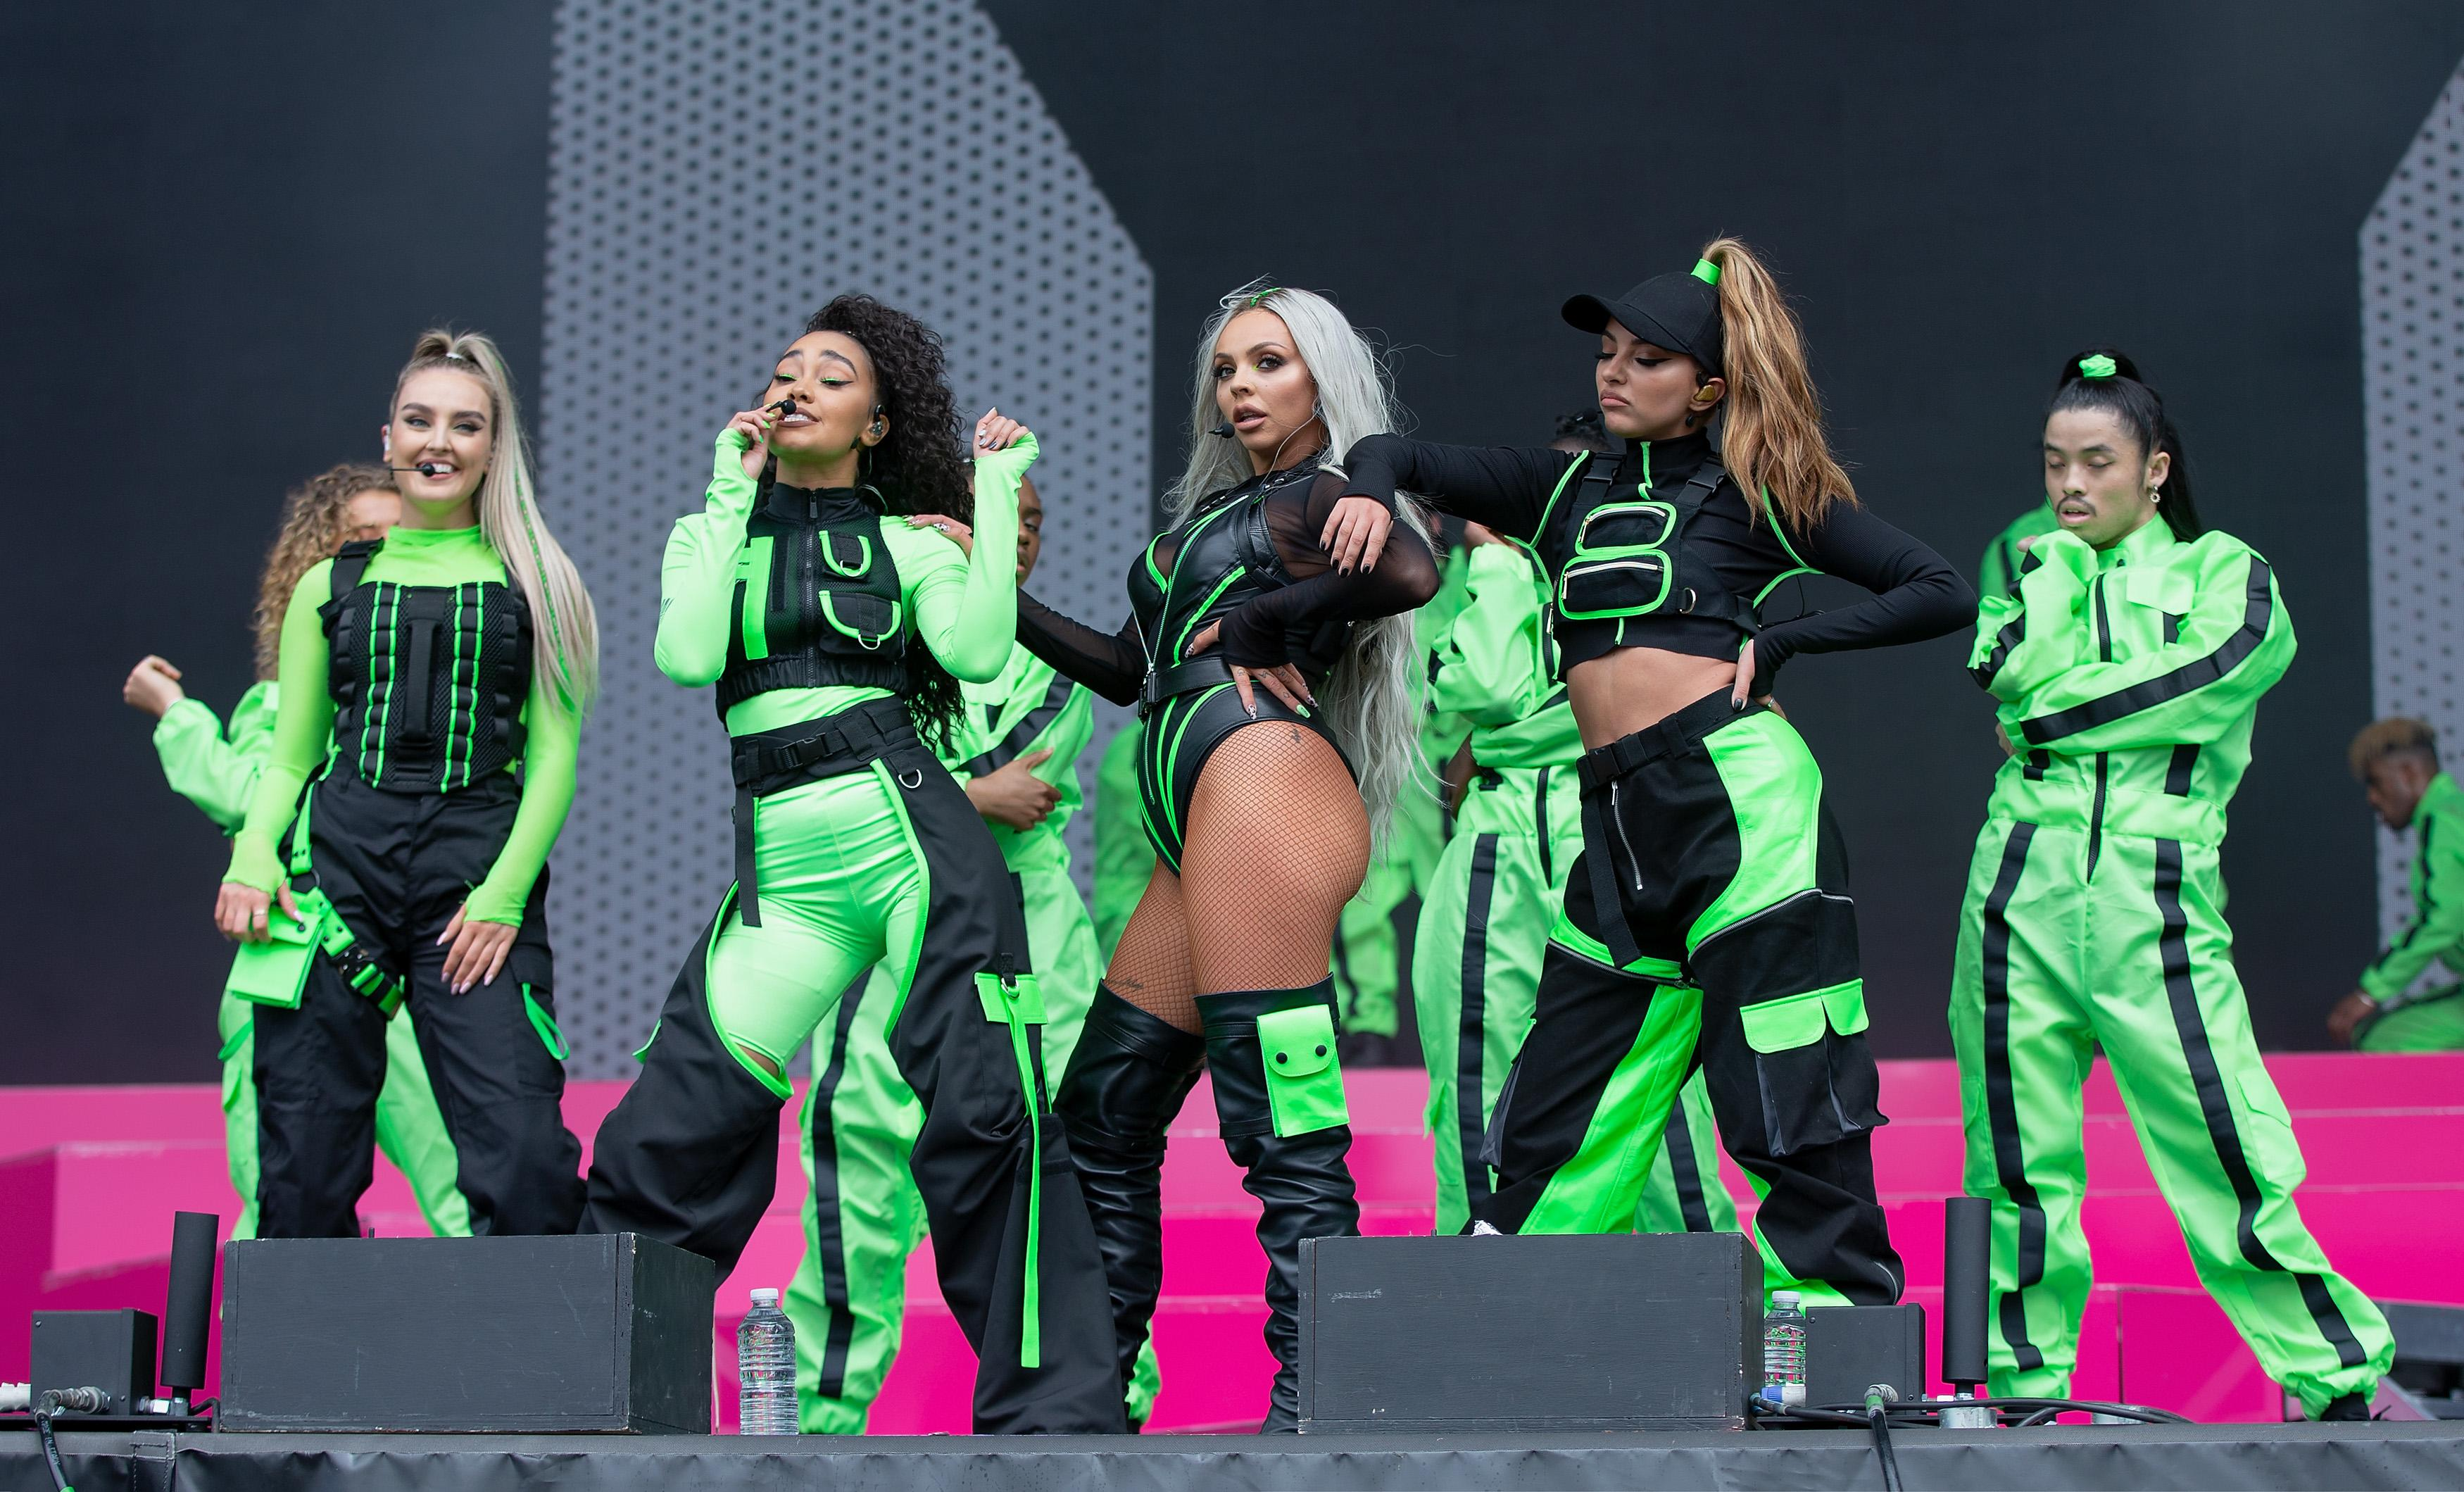 MIDDLESBROUGH, ENGLAND - MAY 26: (L-R) Perrie Edwards, Leigh Anne Pinnock, Jesy Nelson and Jade Thirlwall of Little Mix perform at the Radio 1 Big Weekend at Stewart Park on May 26, 2019 in Middlesbrough, England. (Photo by Jo Hale/Redferns)